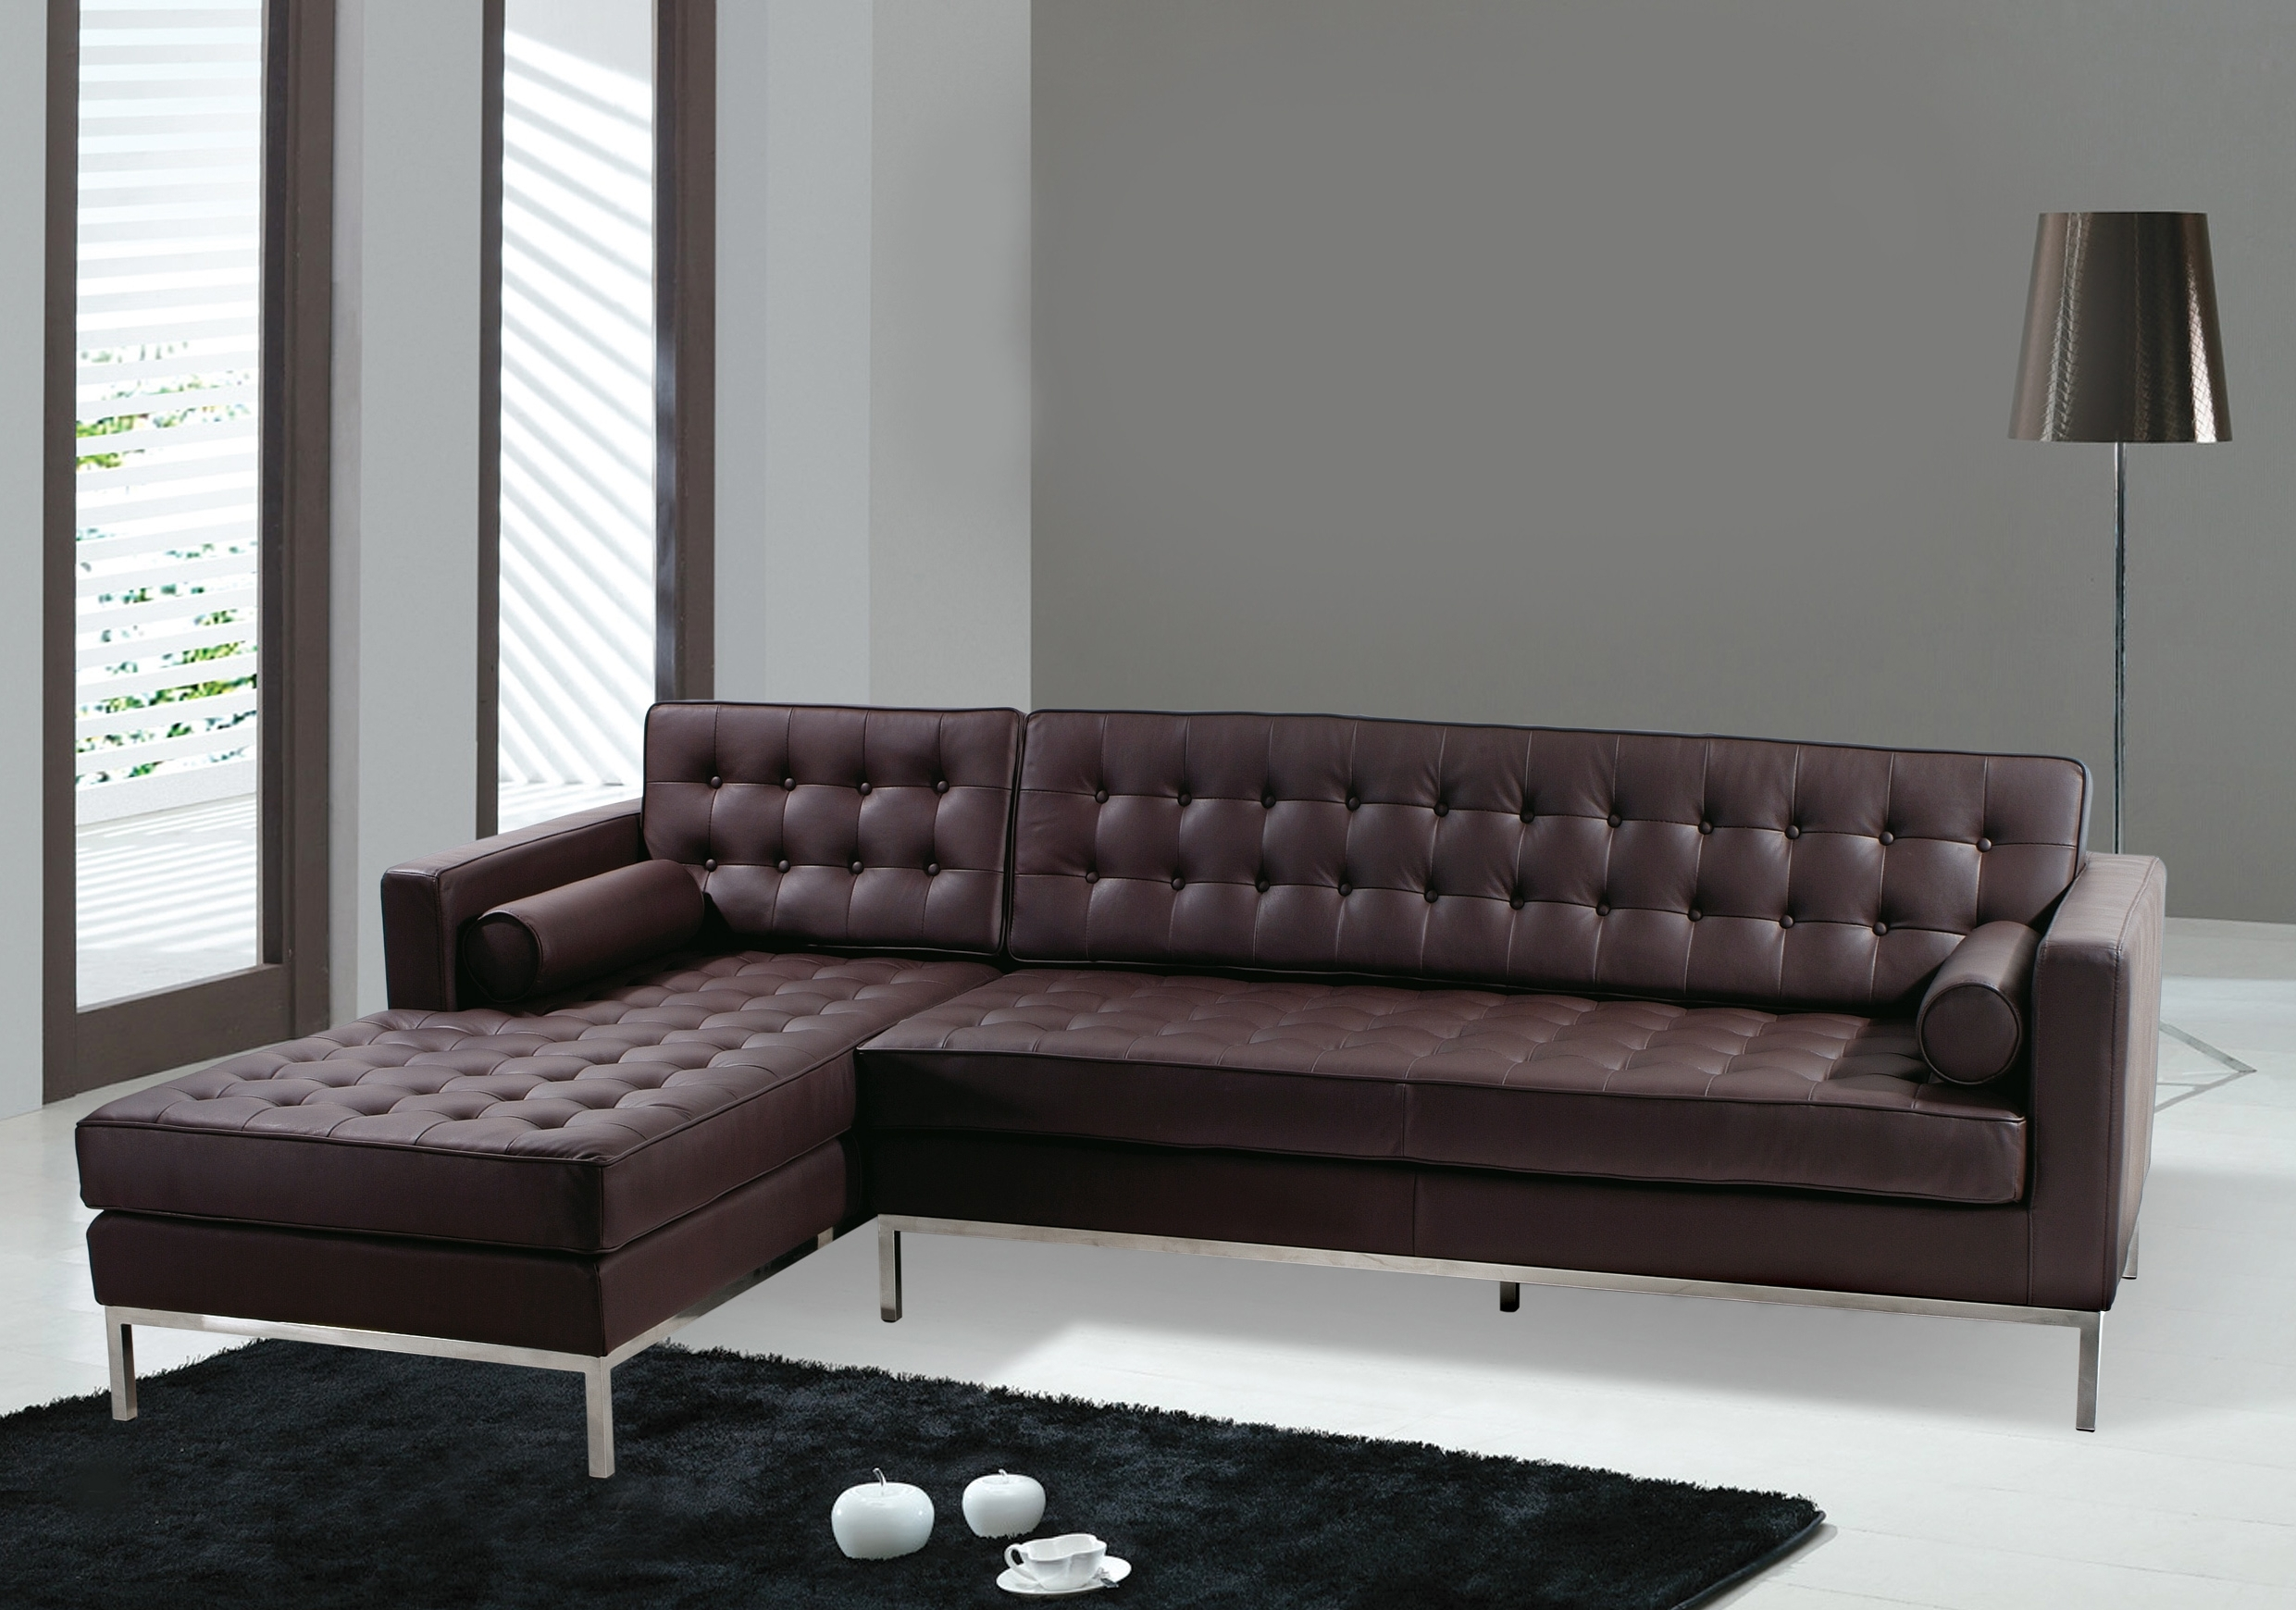 Clearance Sectional Sofas Intended For Trendy Furniture: Clearance Sectional Sofas (View 6 of 15)